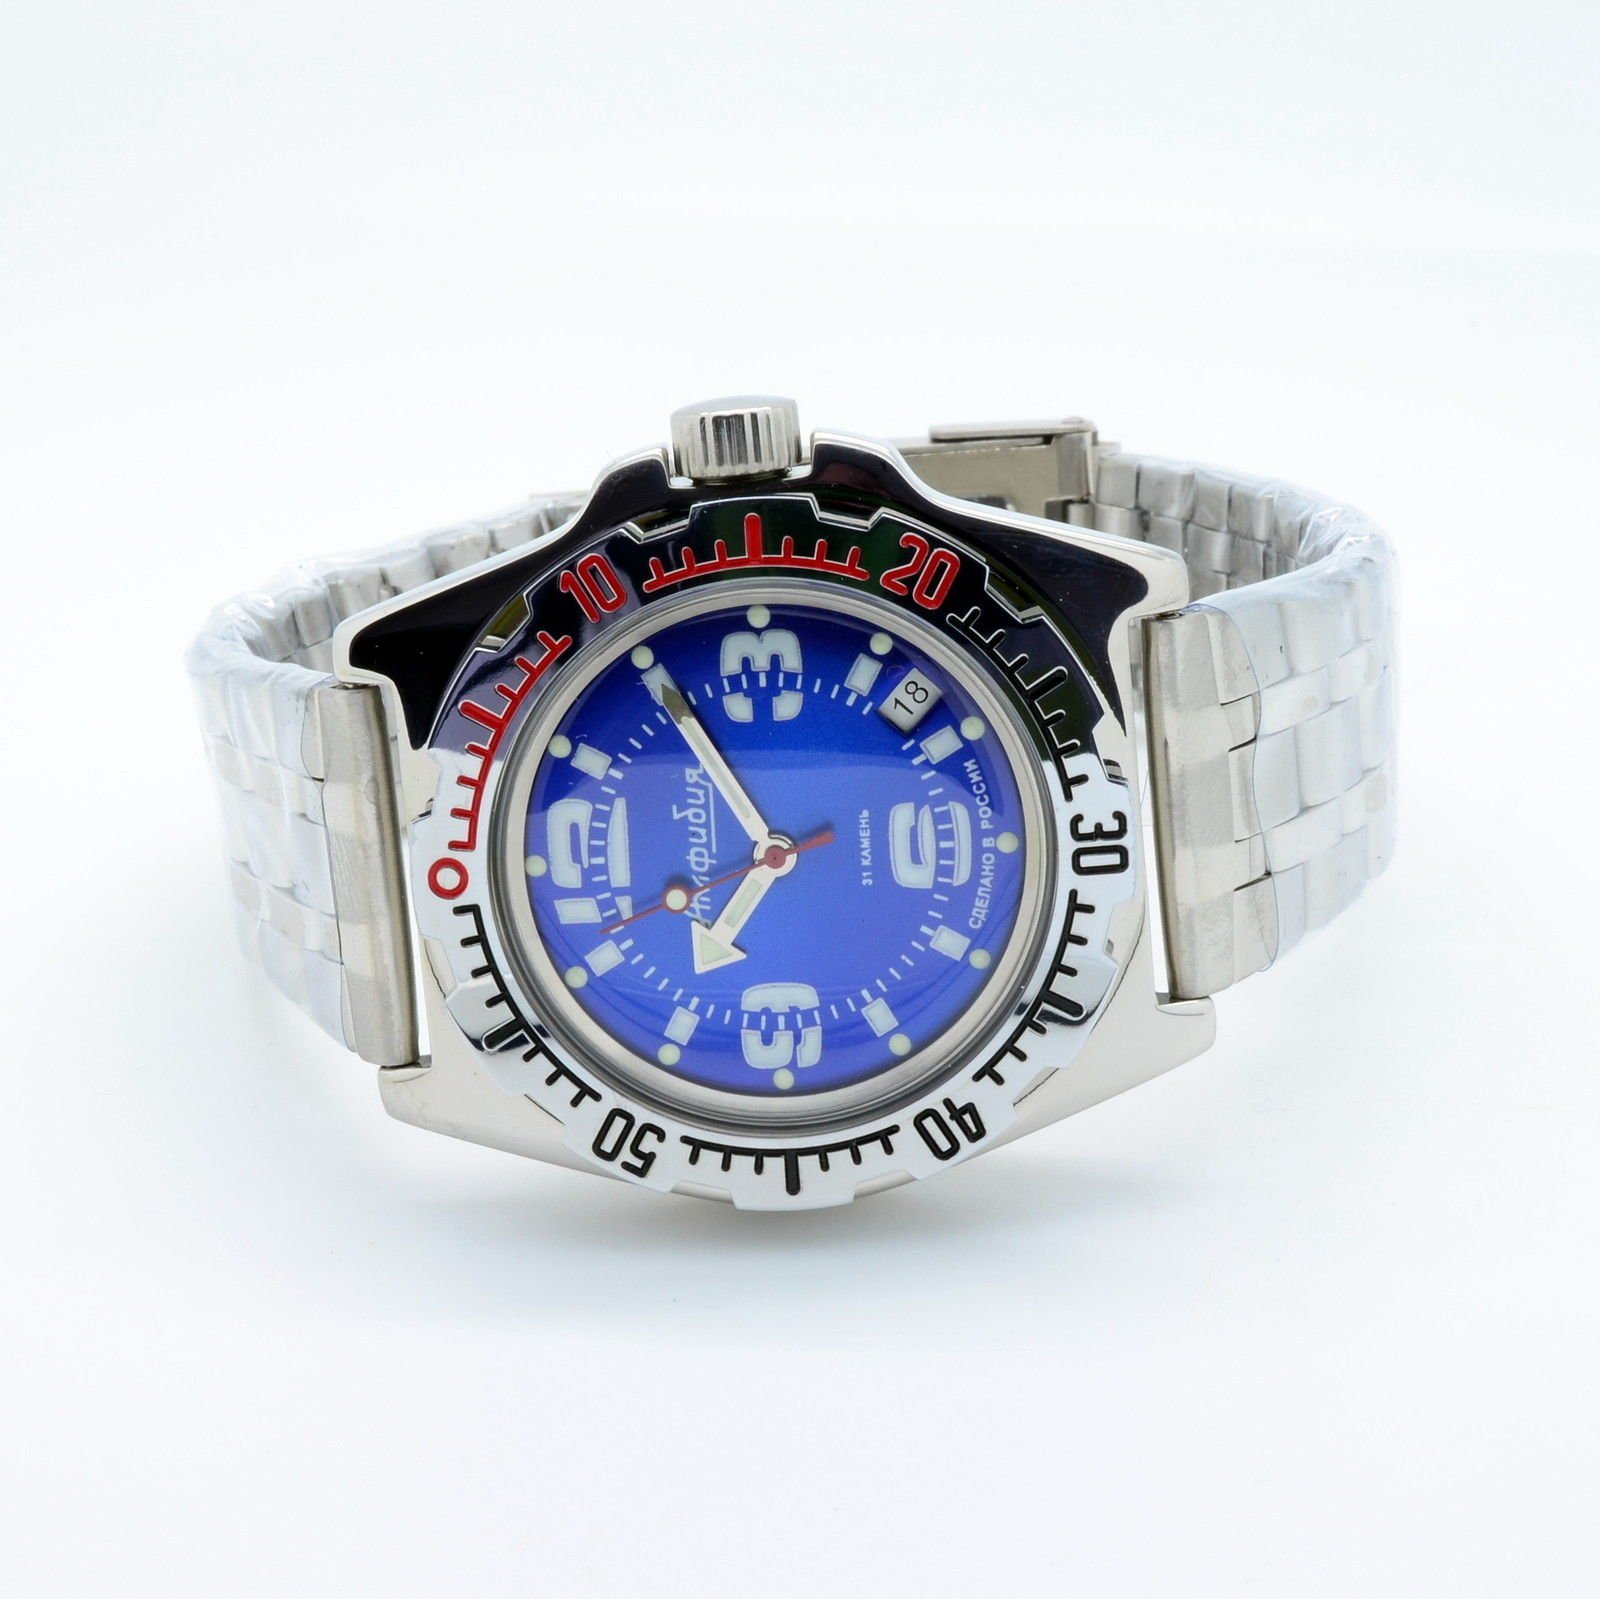 Vostok Amphibian 110902 / 2416b Scuba Diving Military Russian Watches Mechani...